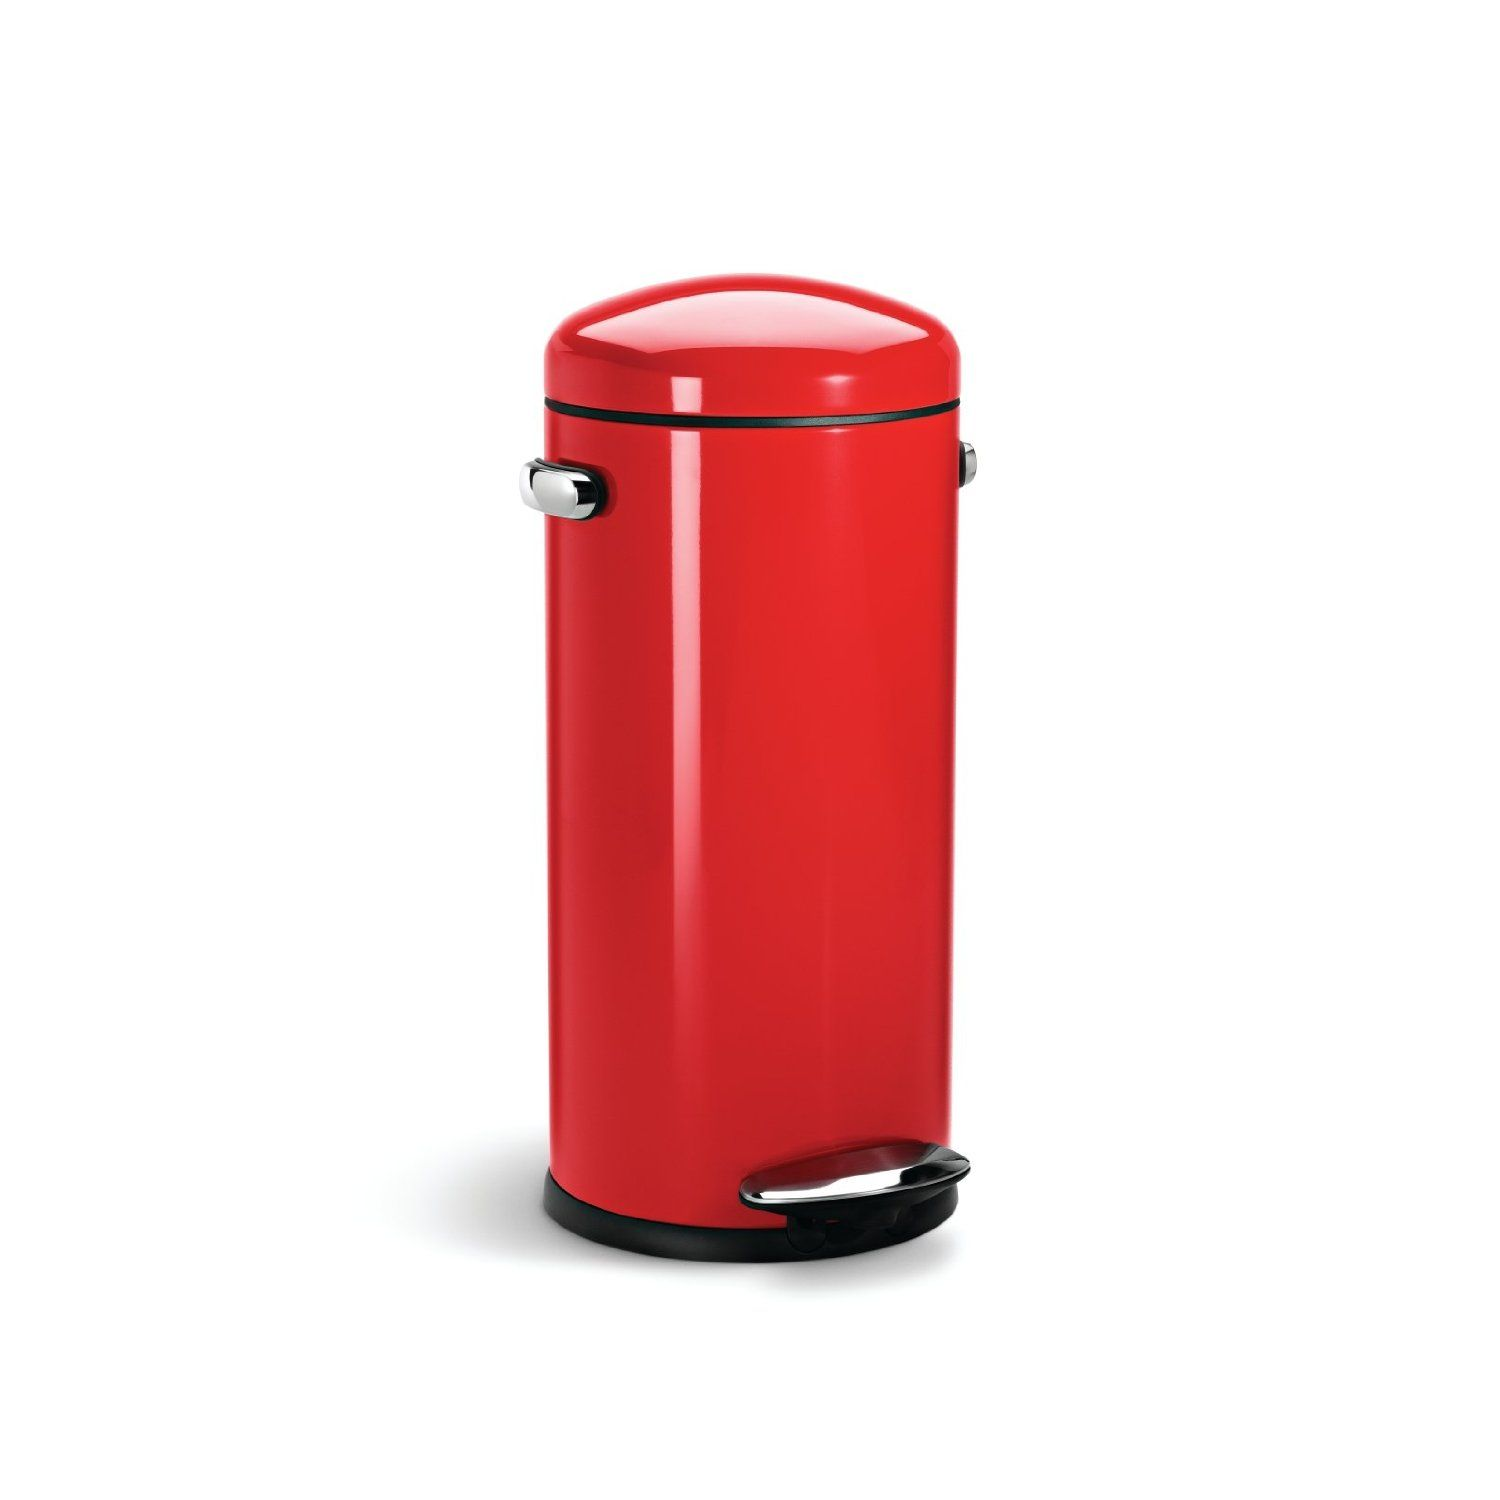 Simplehuman Round Retro Step Trash Can Red Steel 30 Liter 8 Gallon Amazon Com Home Kitchen Trash Can Simplehuman Kitchen Accessories Design